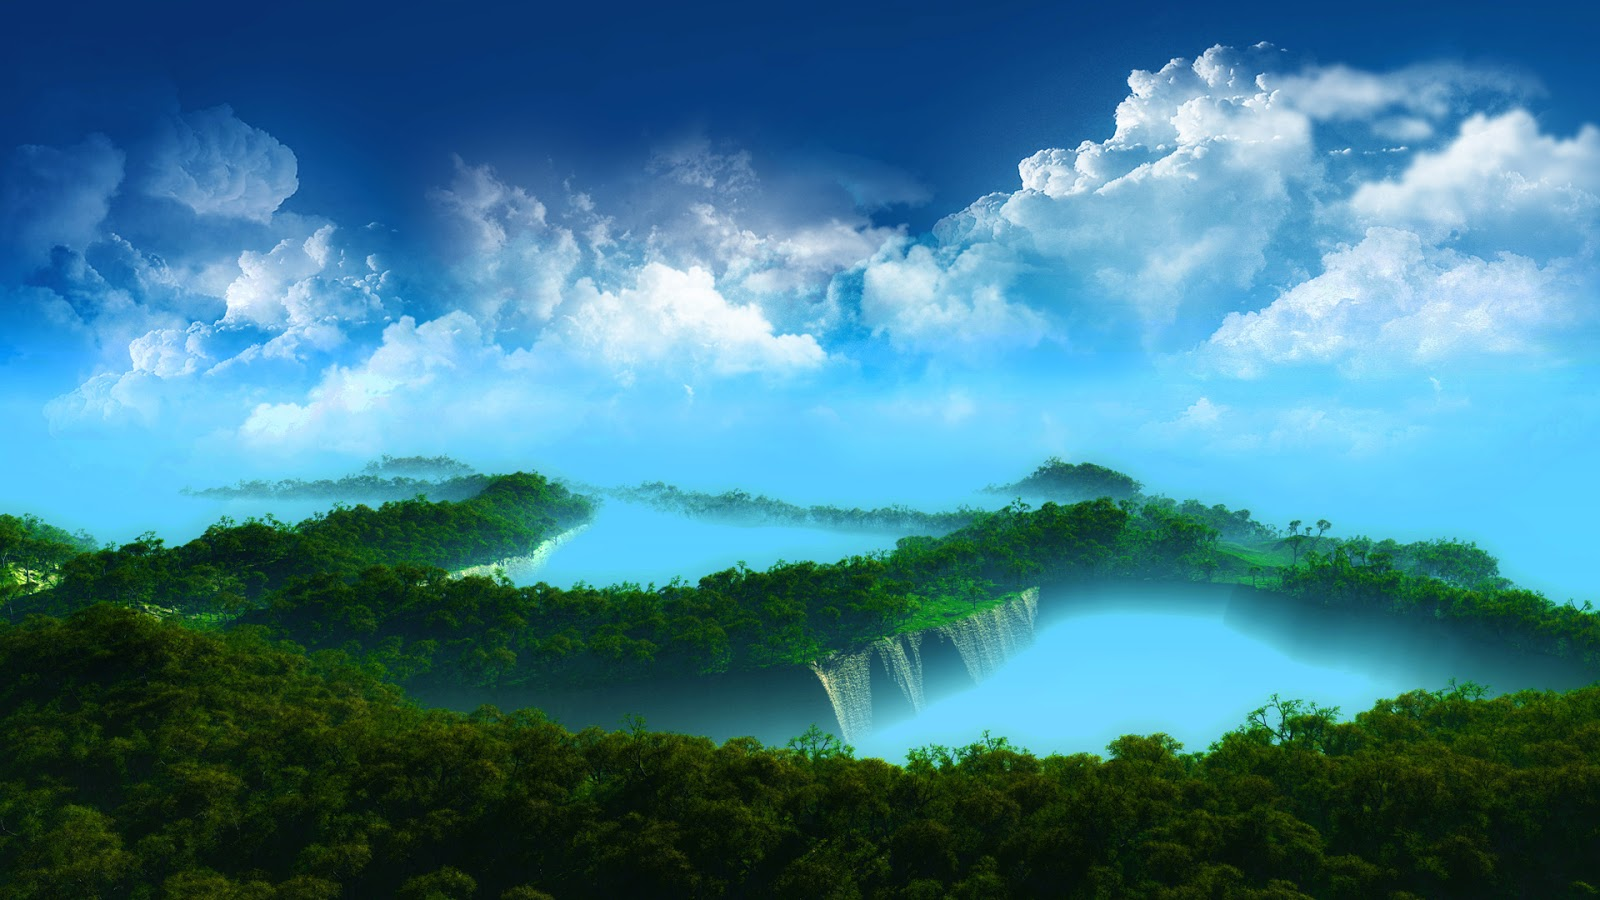 Backgrounds For Tablets Free: HD WALLPAPERS FOR TABLET